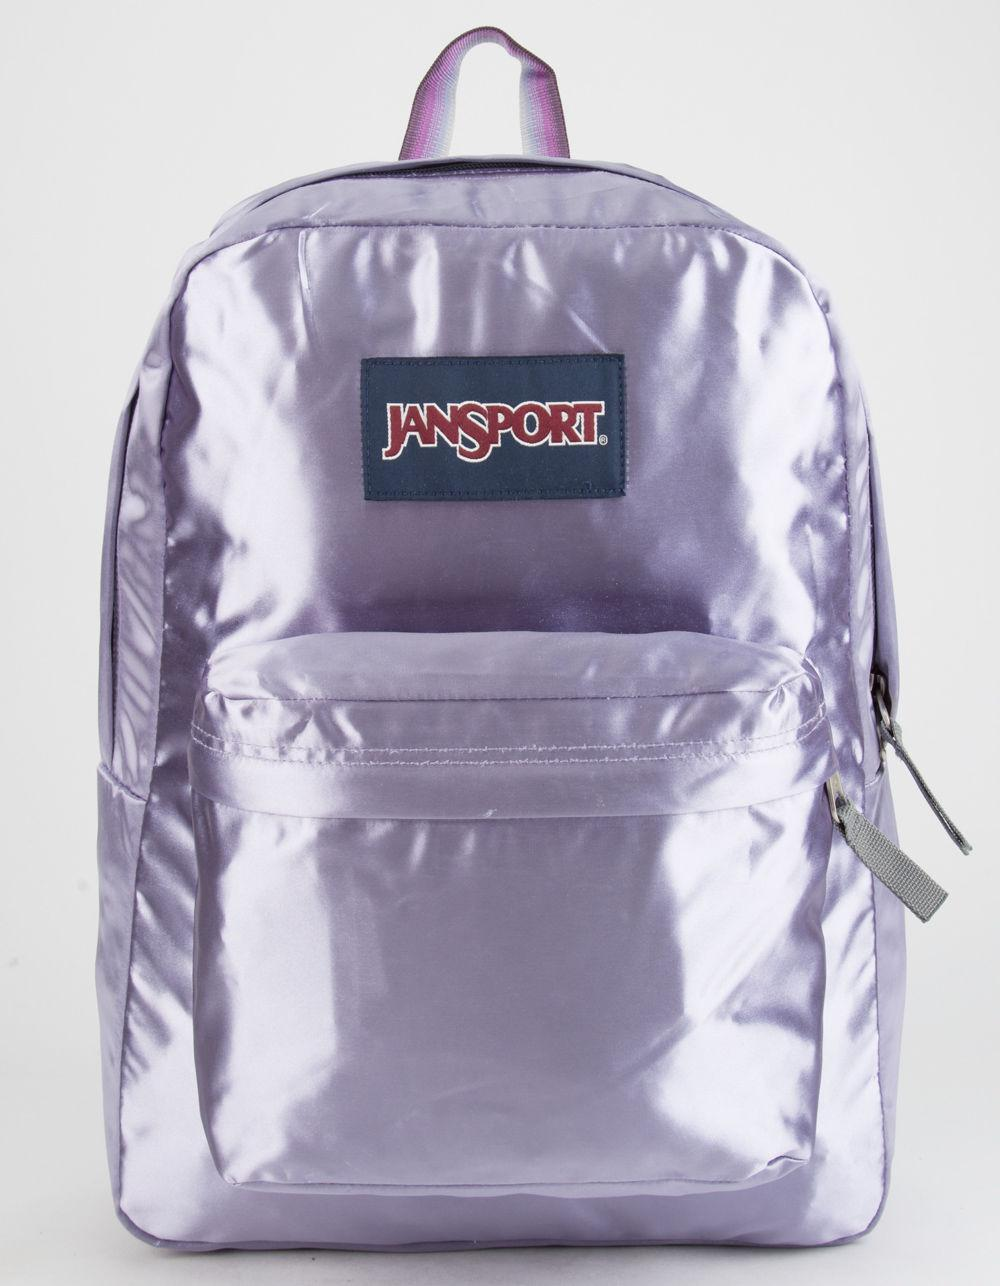 Jansport Backpacks For High Schoolers - Swiss Paralympic